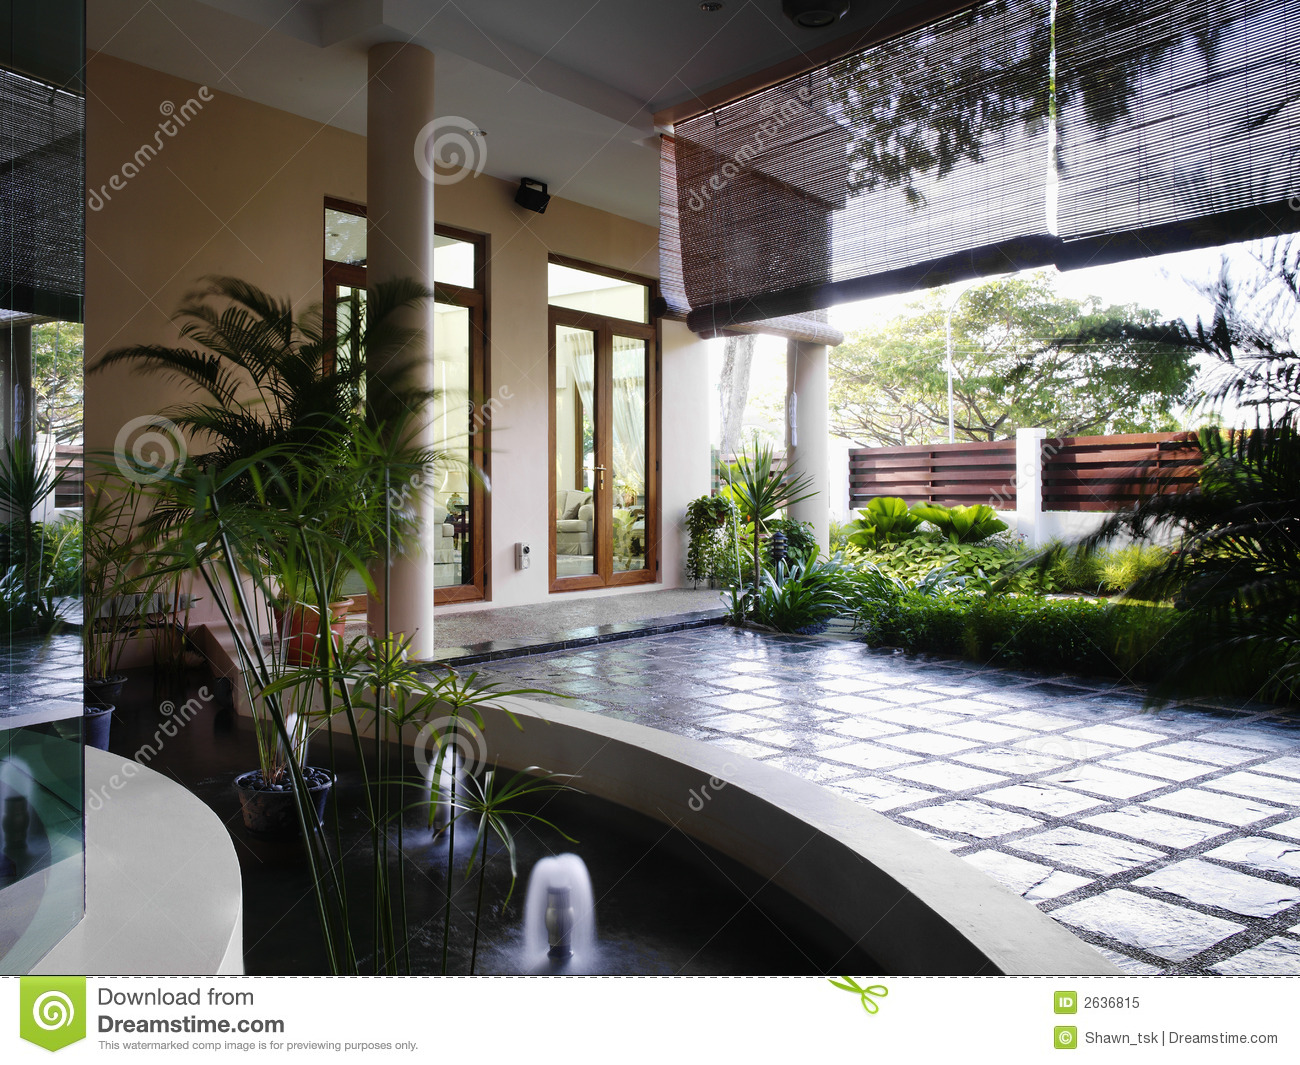 Landscape Design Stock Photos, Images, & Pictures - 166,666 Images